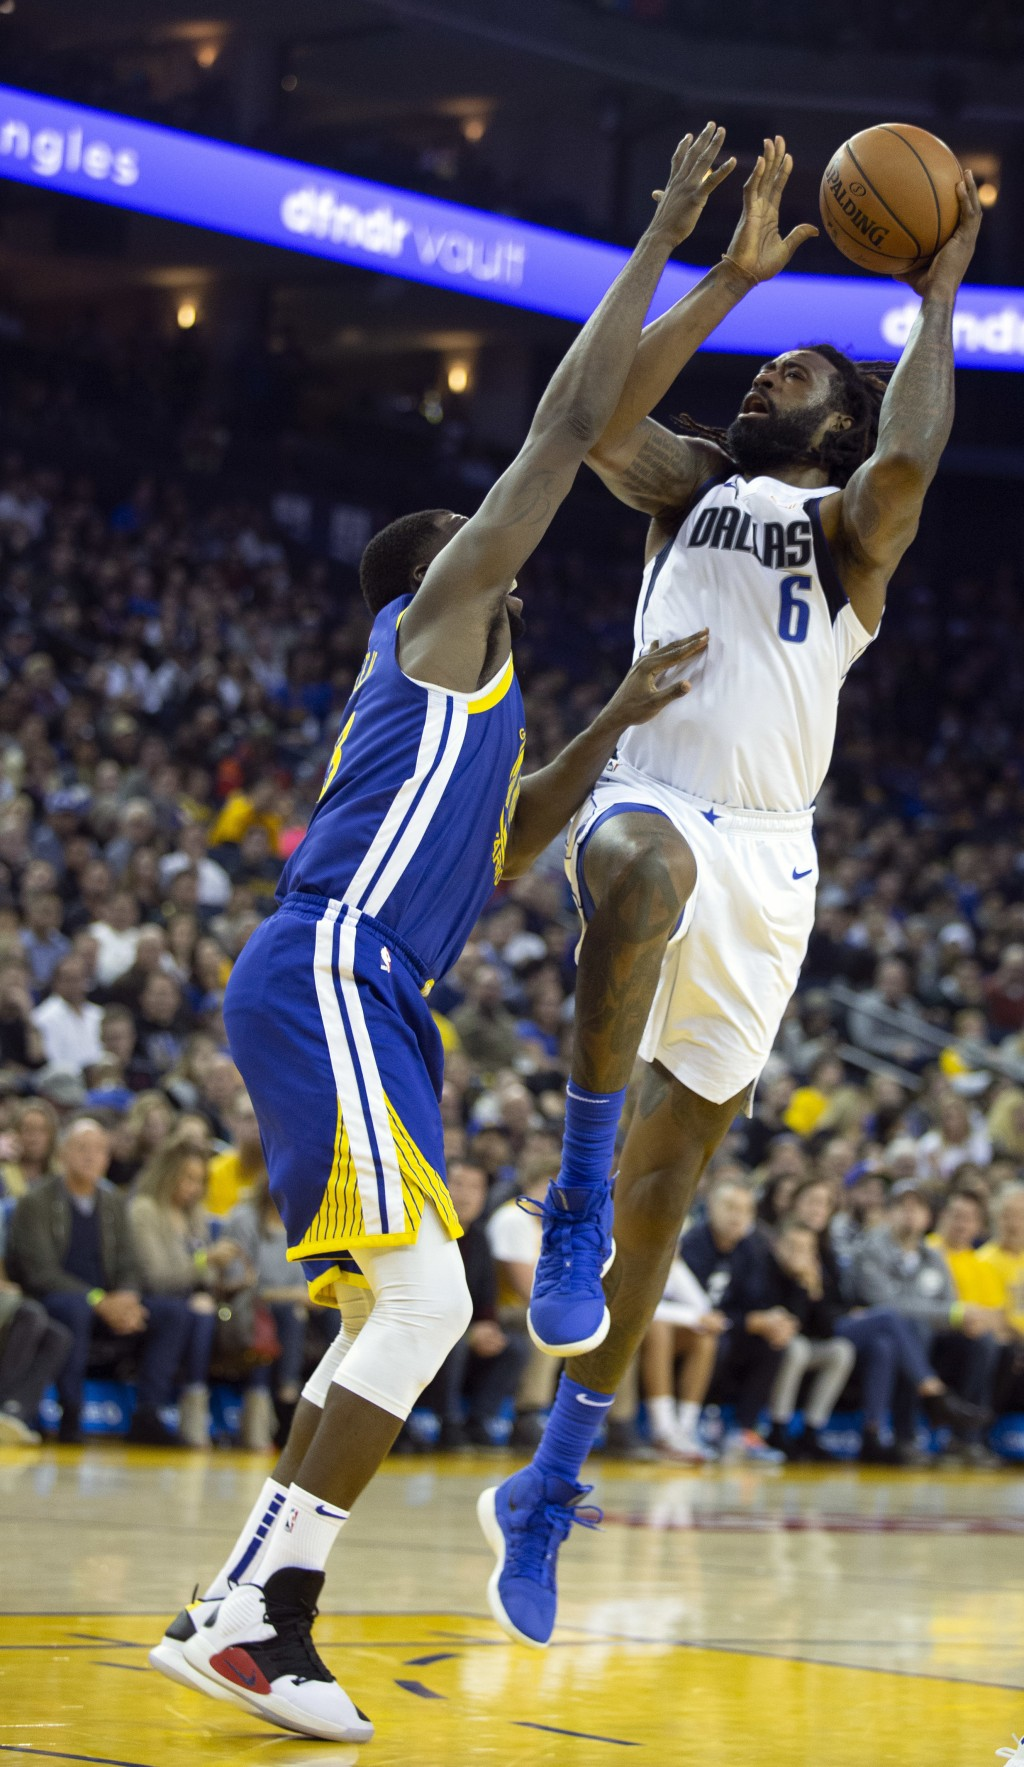 Dallas Mavericks' DeAndre Jordan (6) shoots over Golden State Warriors' Draymond Green during the second quarter of an NBA basketball game Saturday, D...